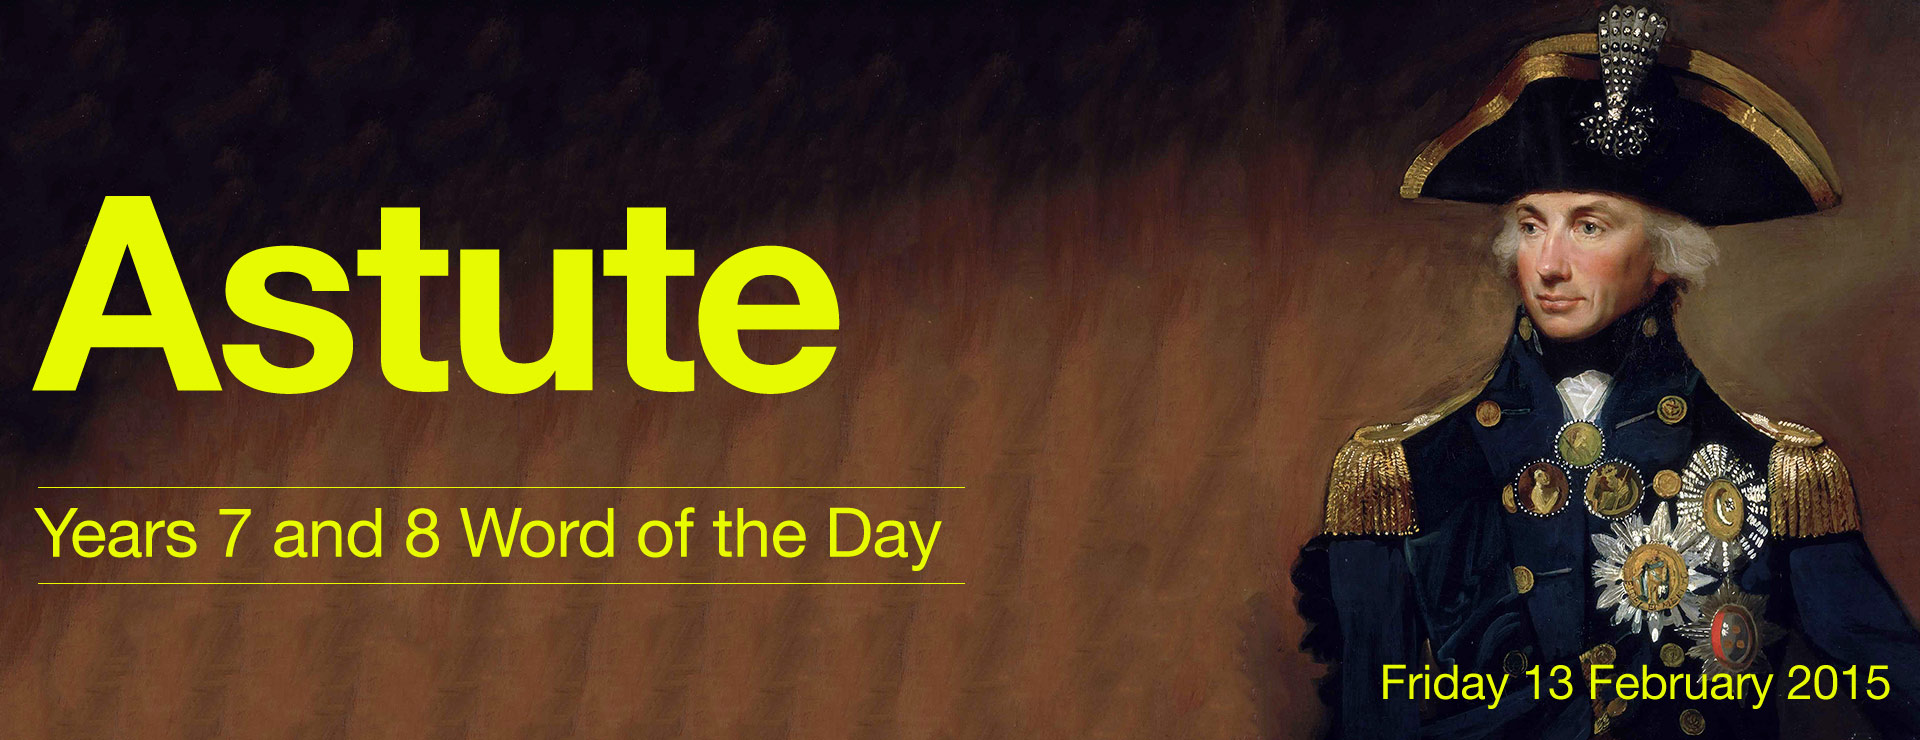 Word-of-the-Day-94.jpg